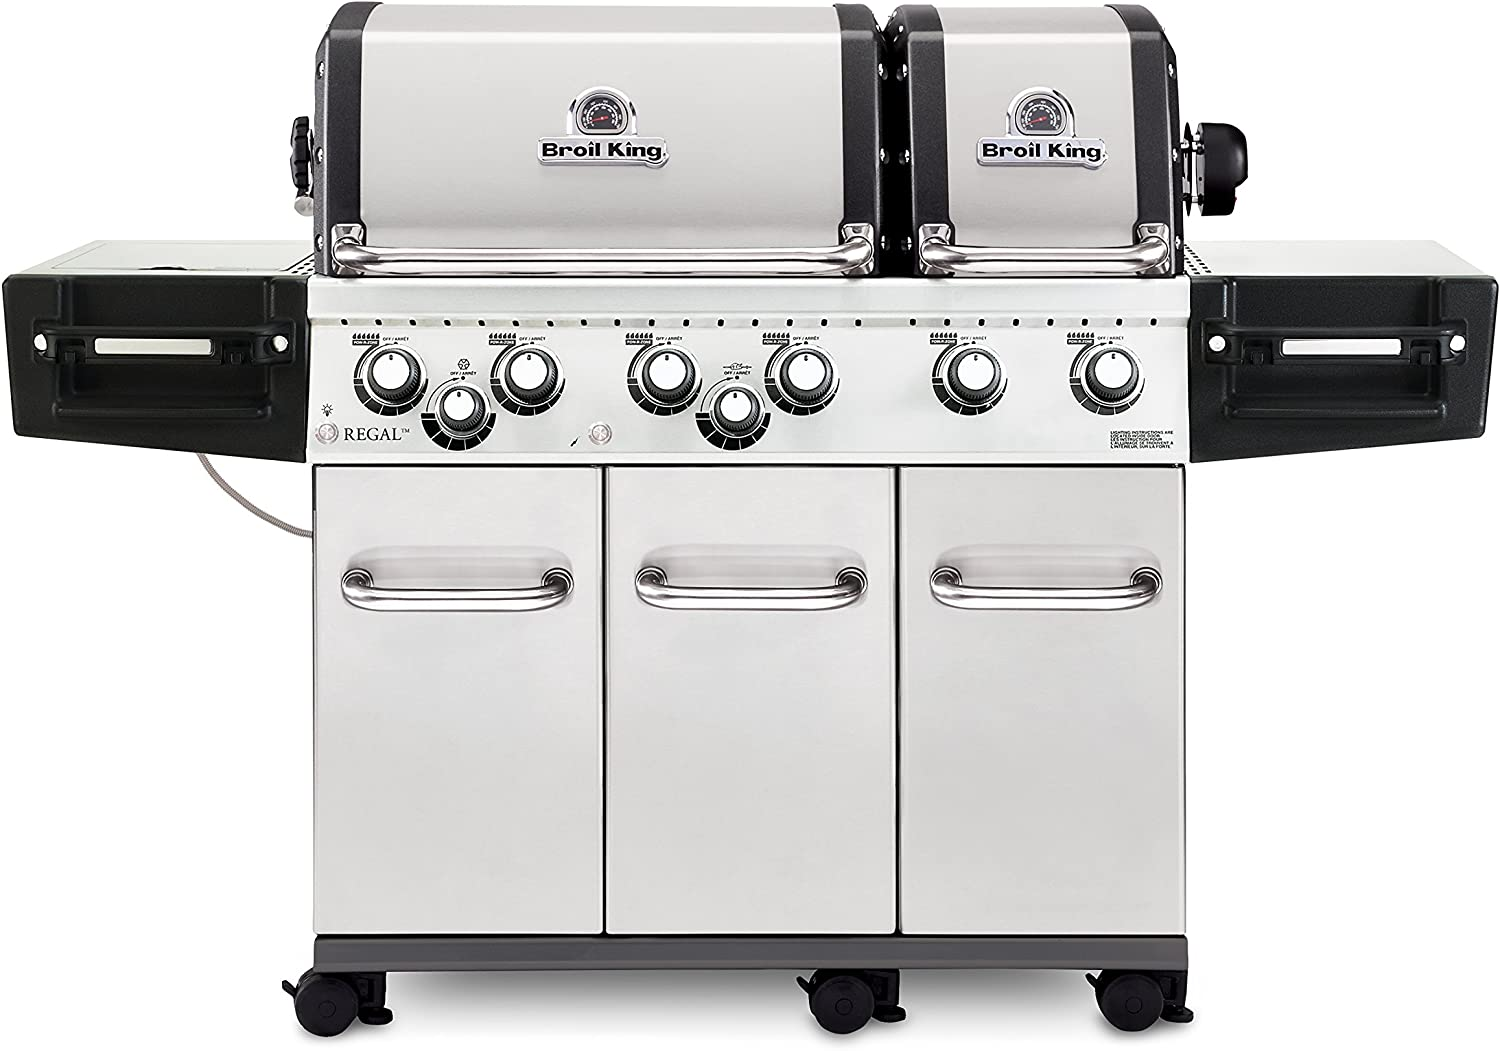 Broil King 957347 Regal XLS Pro Natural Gas Grill review